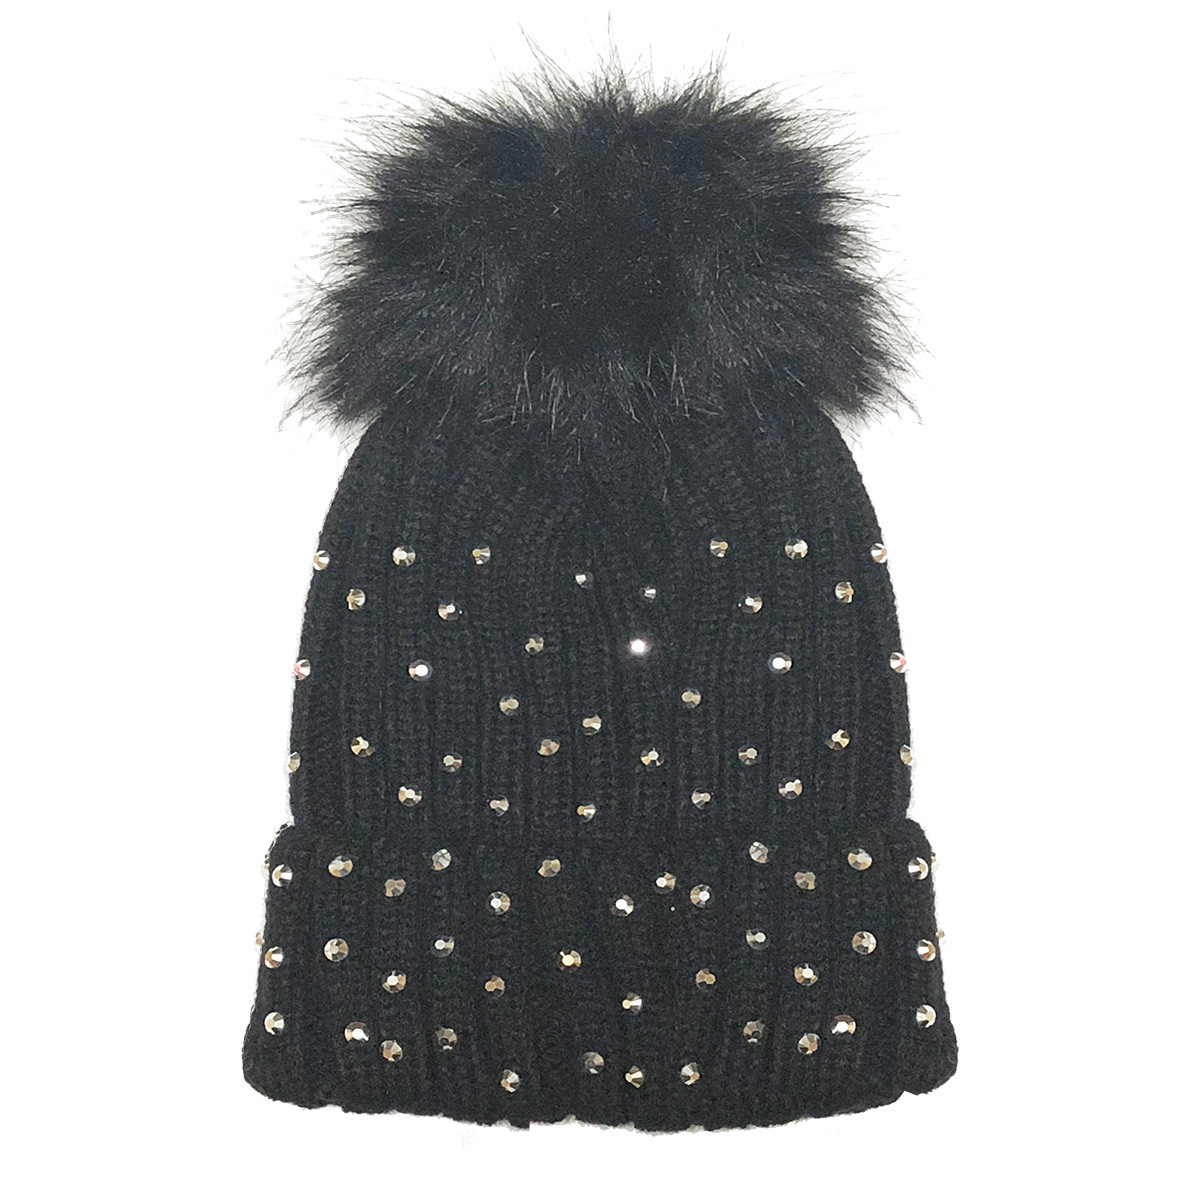 Black Rhinestone Newborn and Infant Hat - The Natural Hair Shop 4f404ea1d67